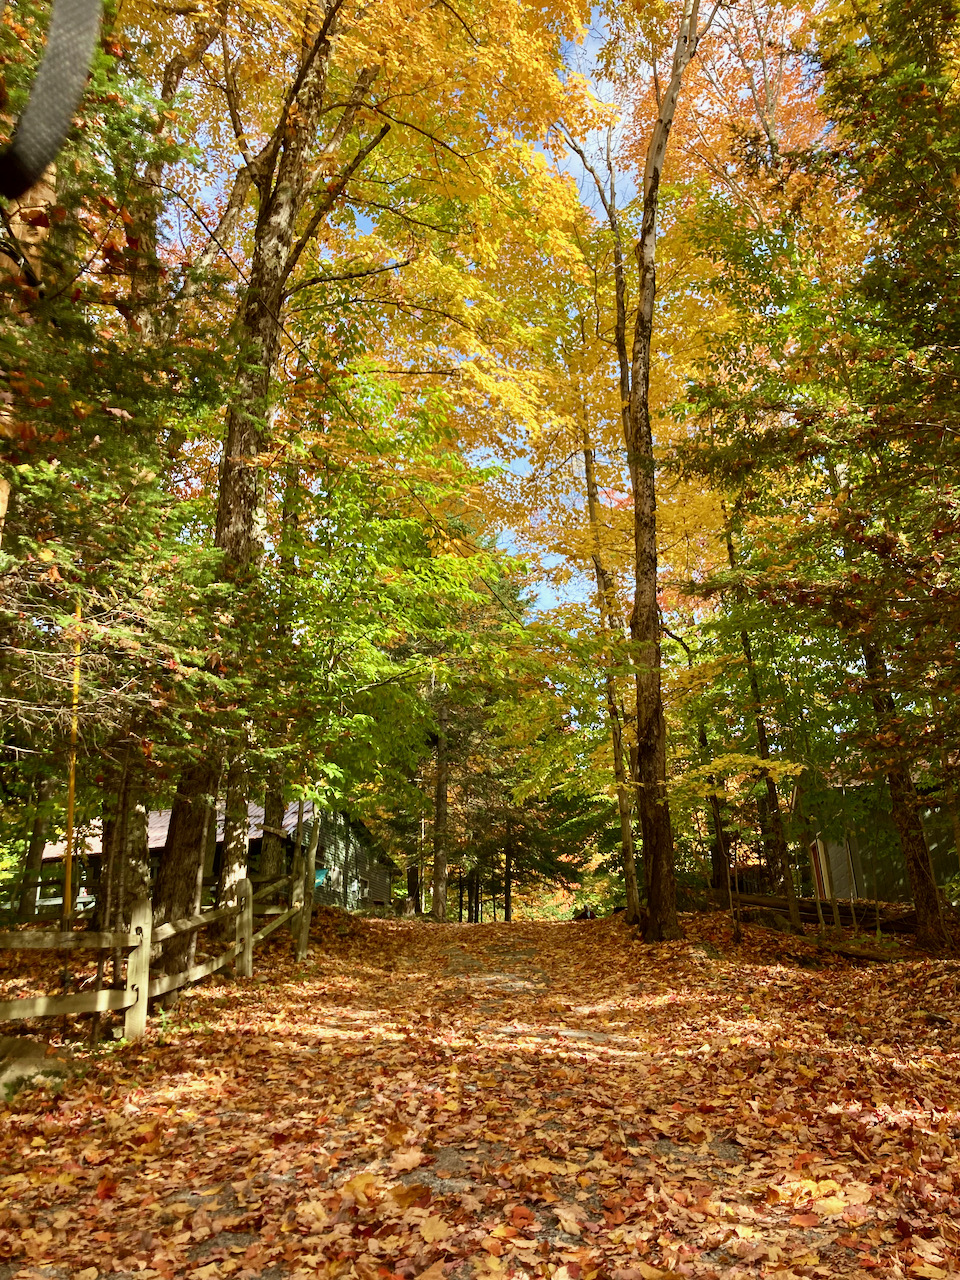 Path, covered in fallen leaves, with trees with colorful leaves alongside trail.